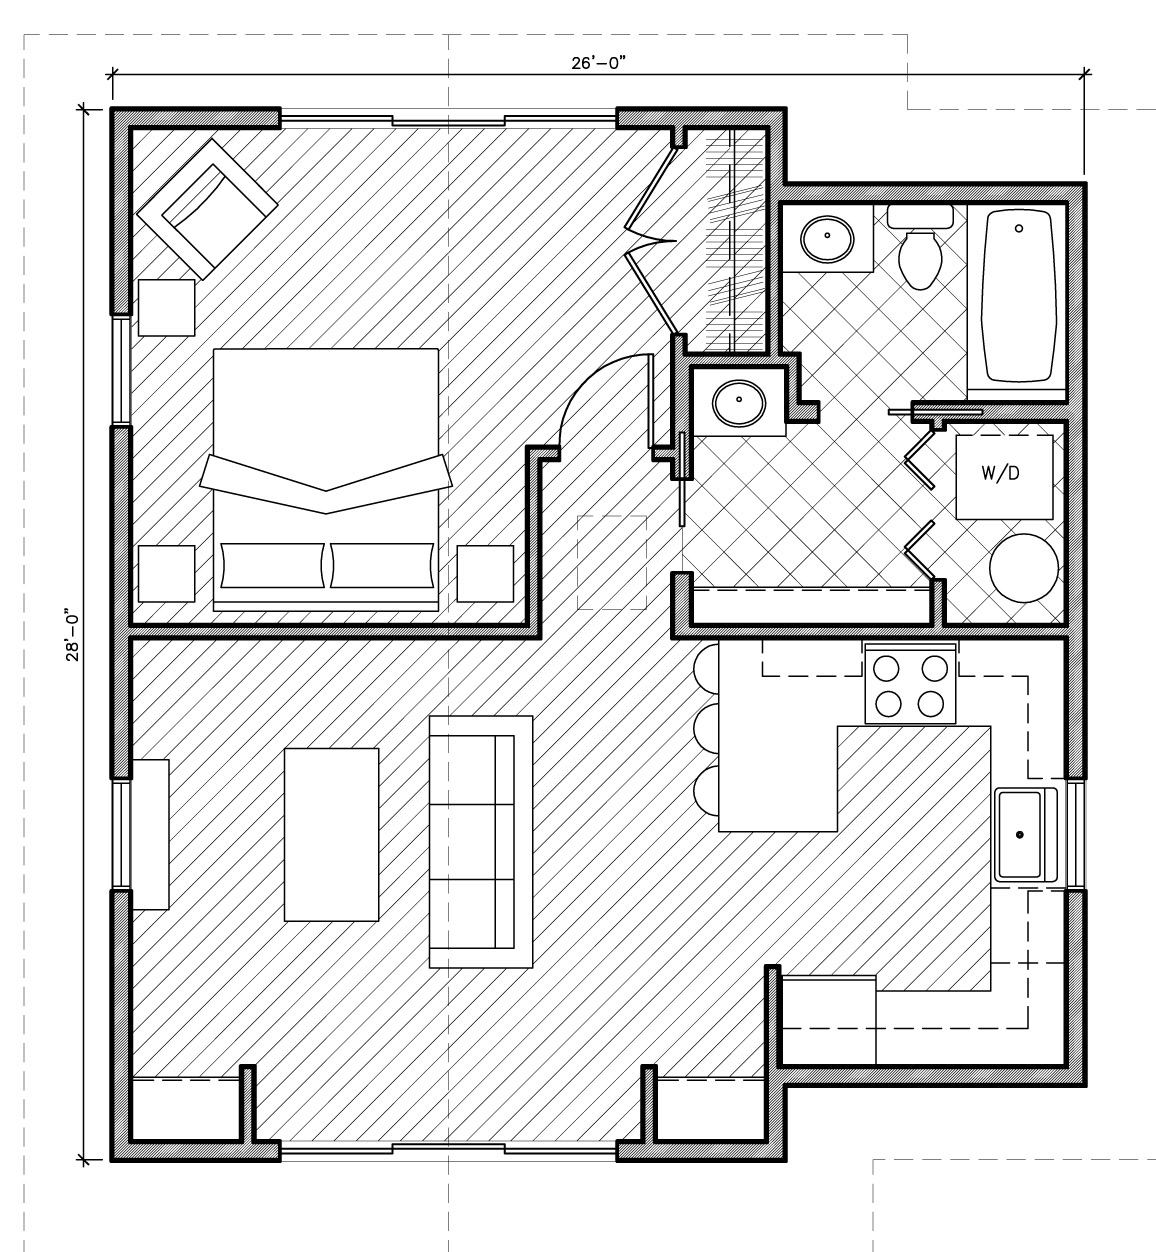 1 bedroom cottage plans house plans home designs - Www one bedroom cottage floor plans ...